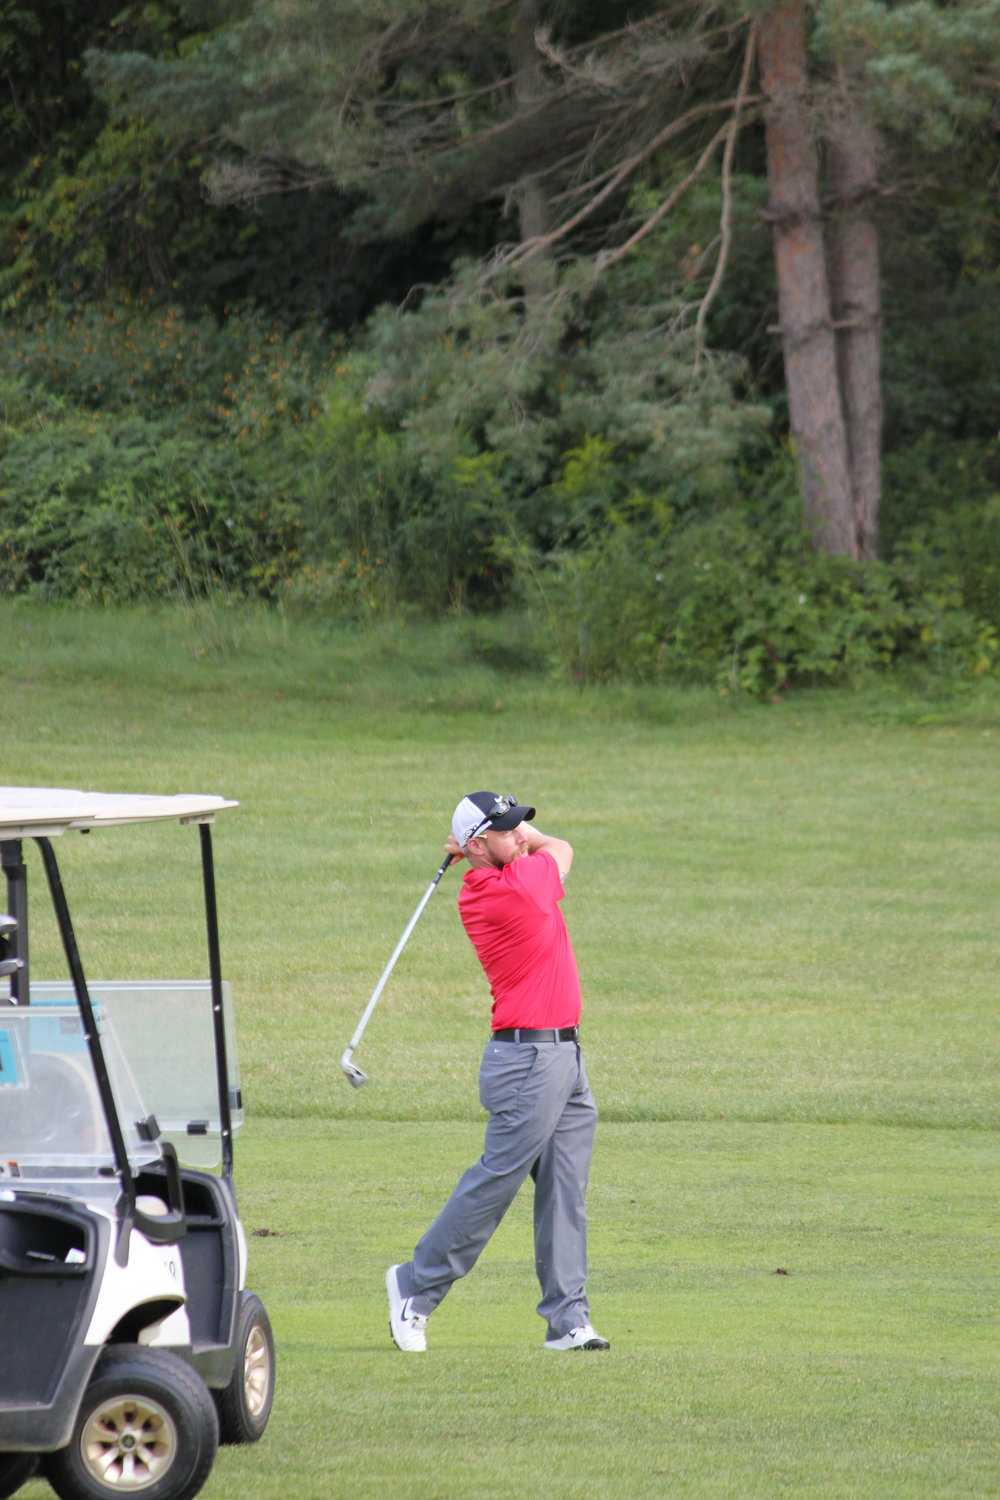 IMG_2250 Jesse FFO Golf Outing 2015 copy.JPG